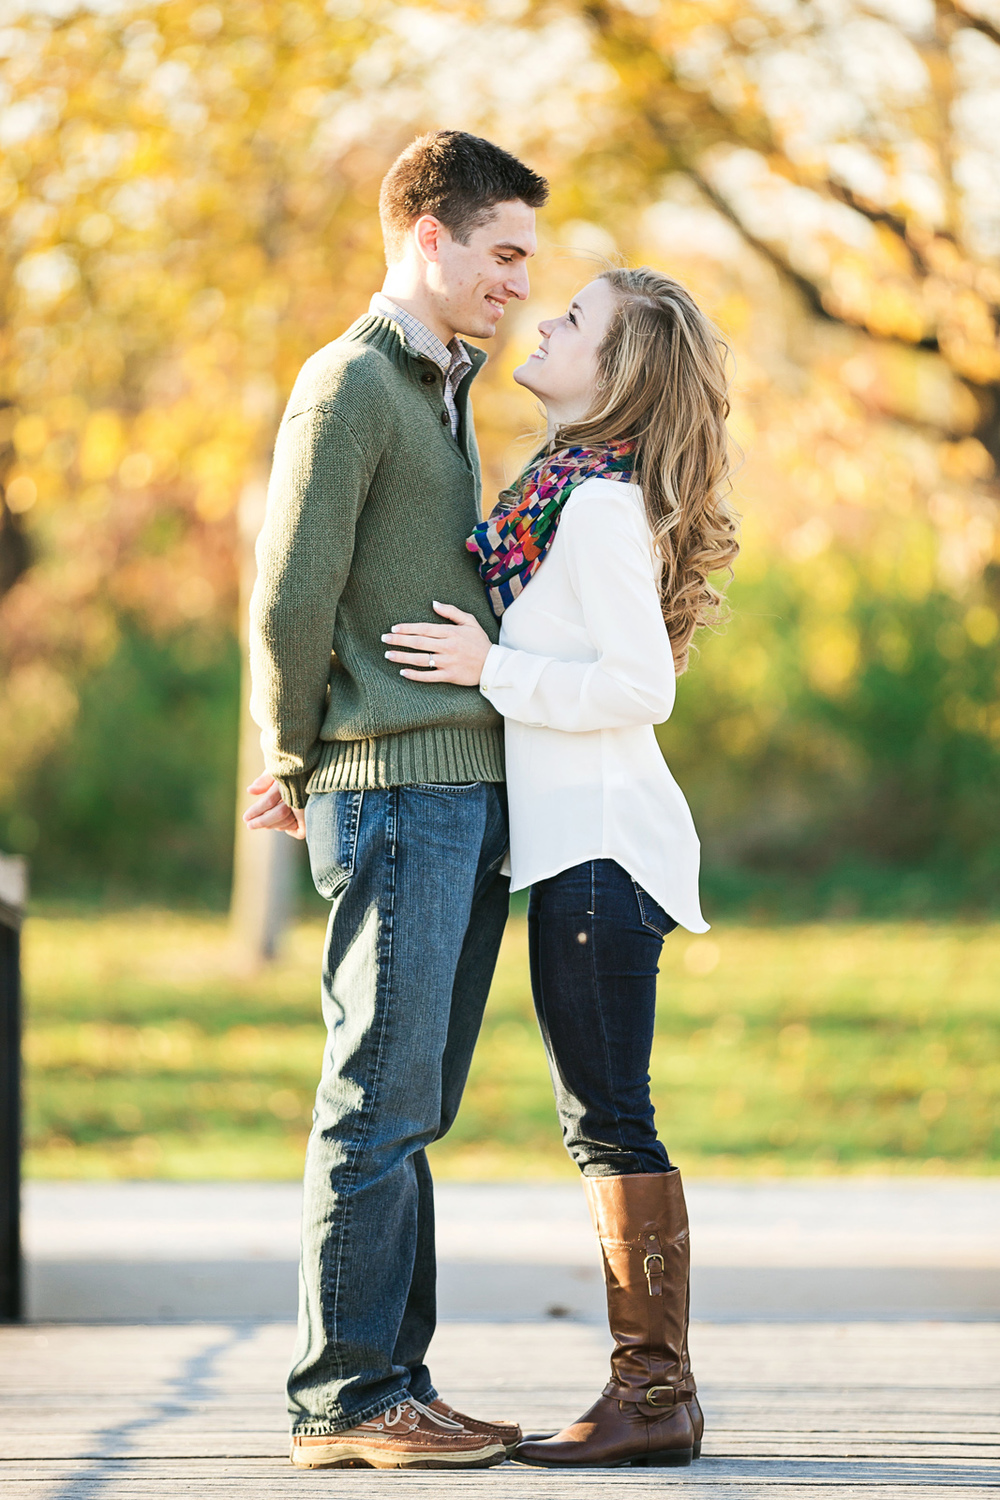 Oldani Photography-St Louis-Forest Park-Grand Basin-Engagement Session-engagement photos_20141108_170551.jpg